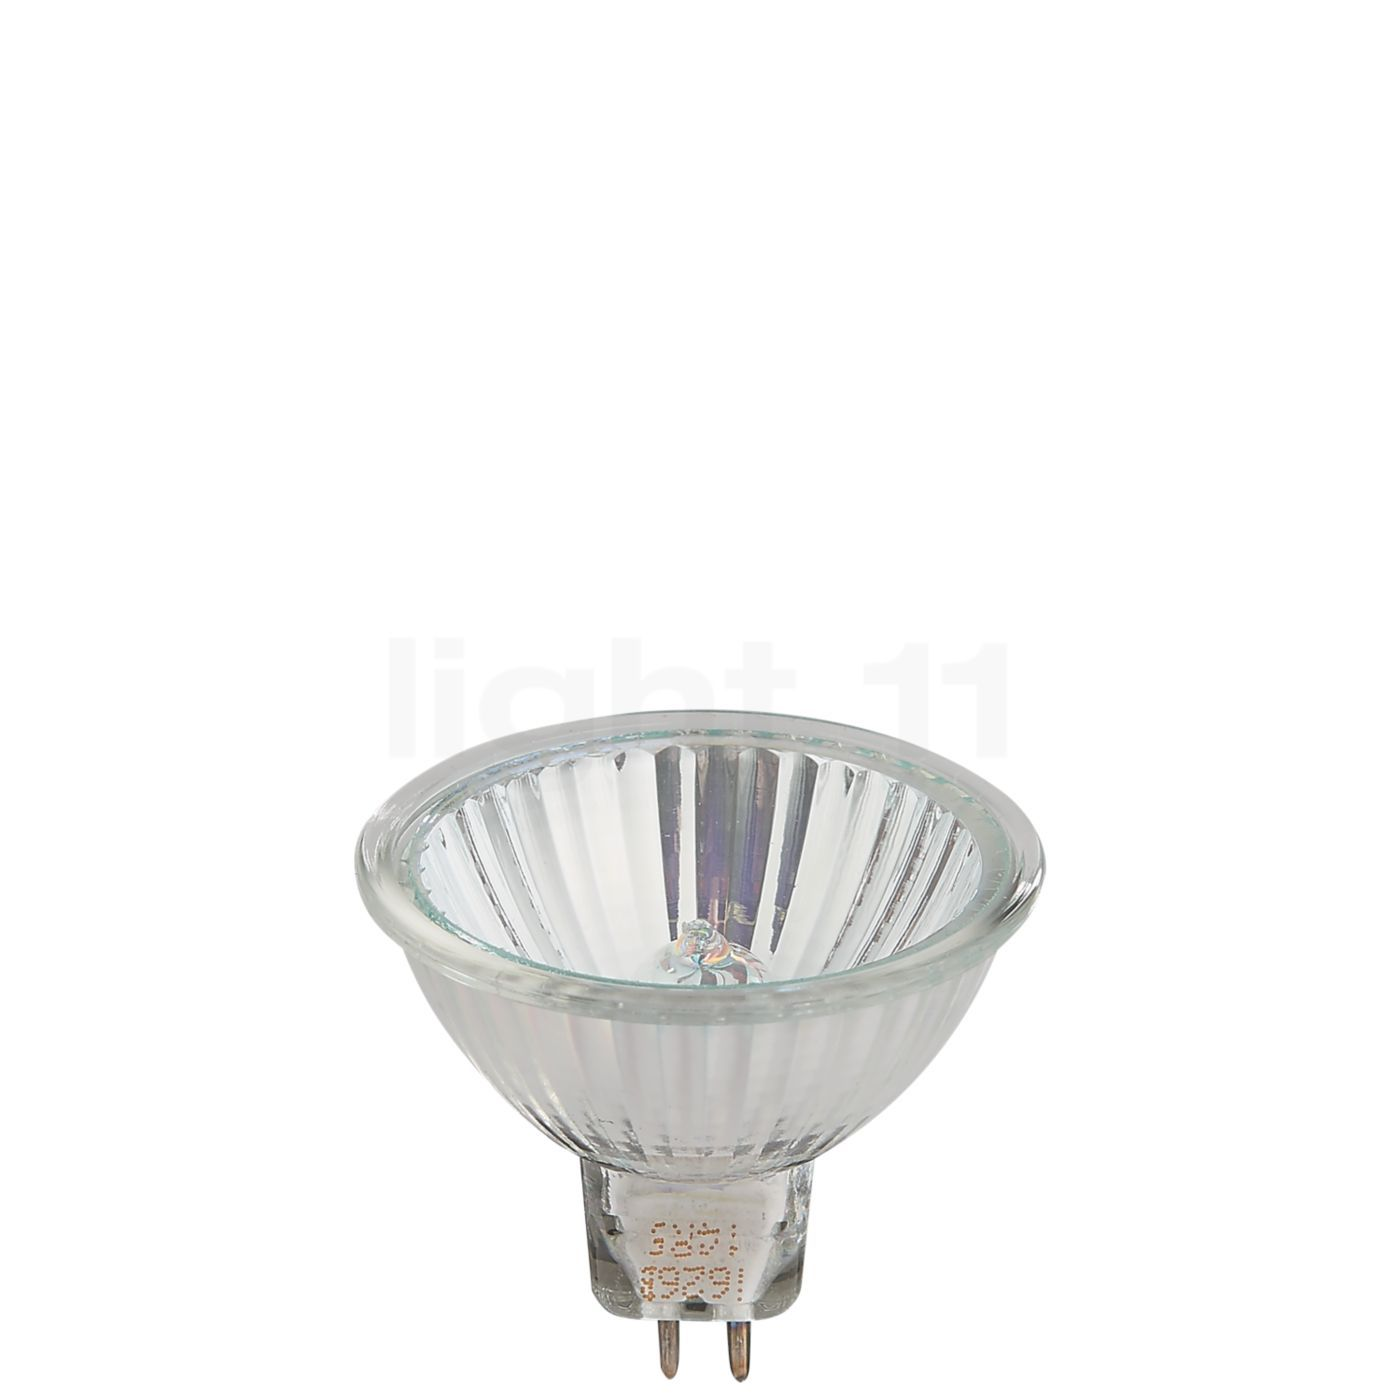 Radium Qr Cb51 50w 38 Gu5 3 Halogen Lamp Lamp Light Lamp